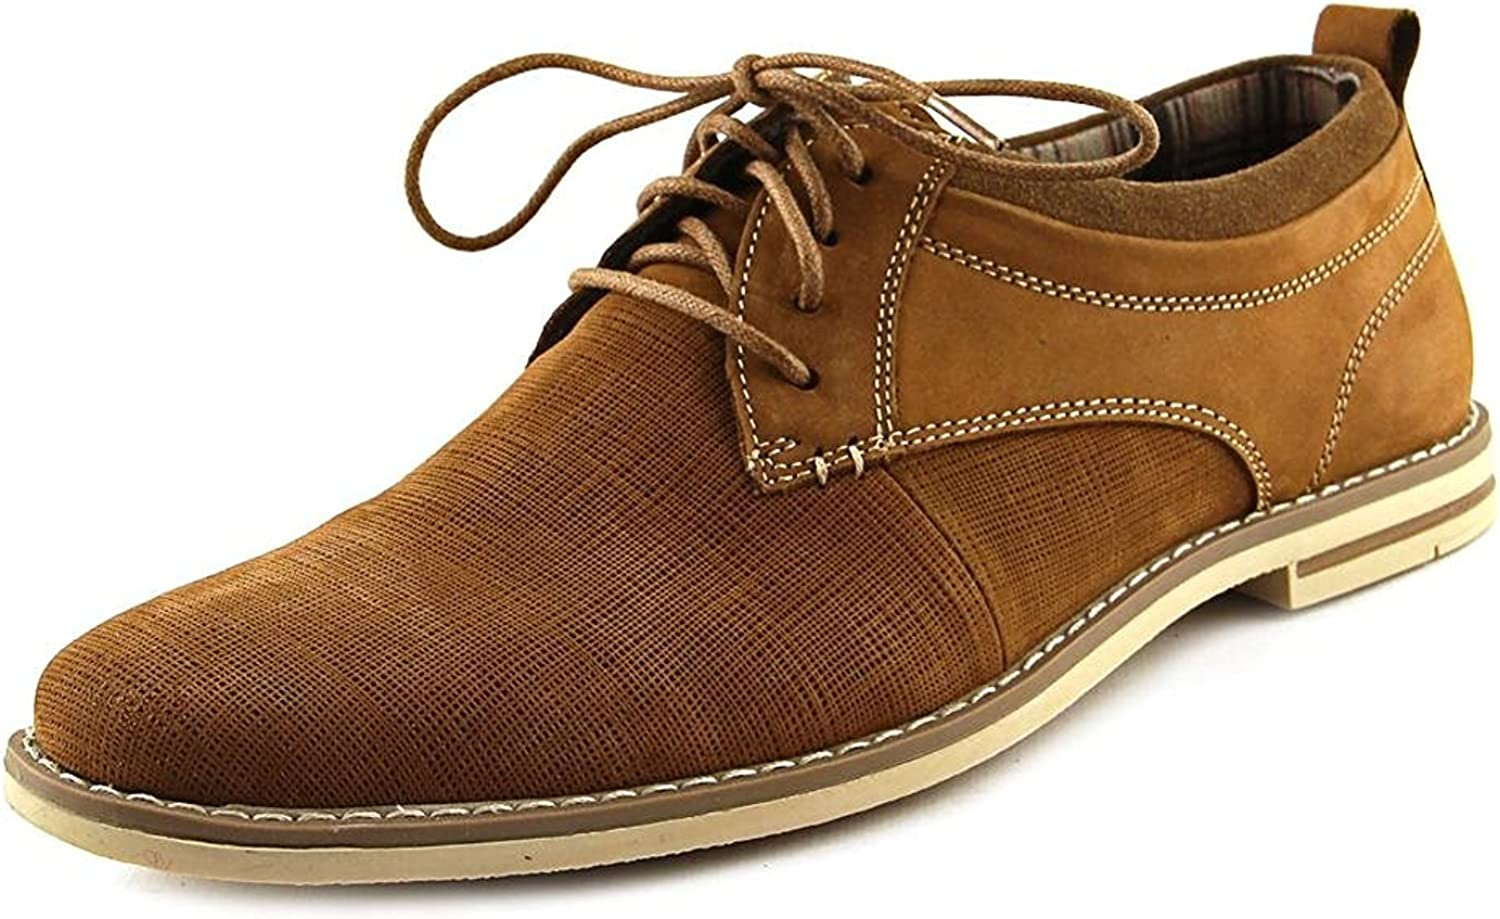 Steve Madden Mens P-Geraro Leather Lace Up Dress Oxfords, Tan Leather, Size 11.0